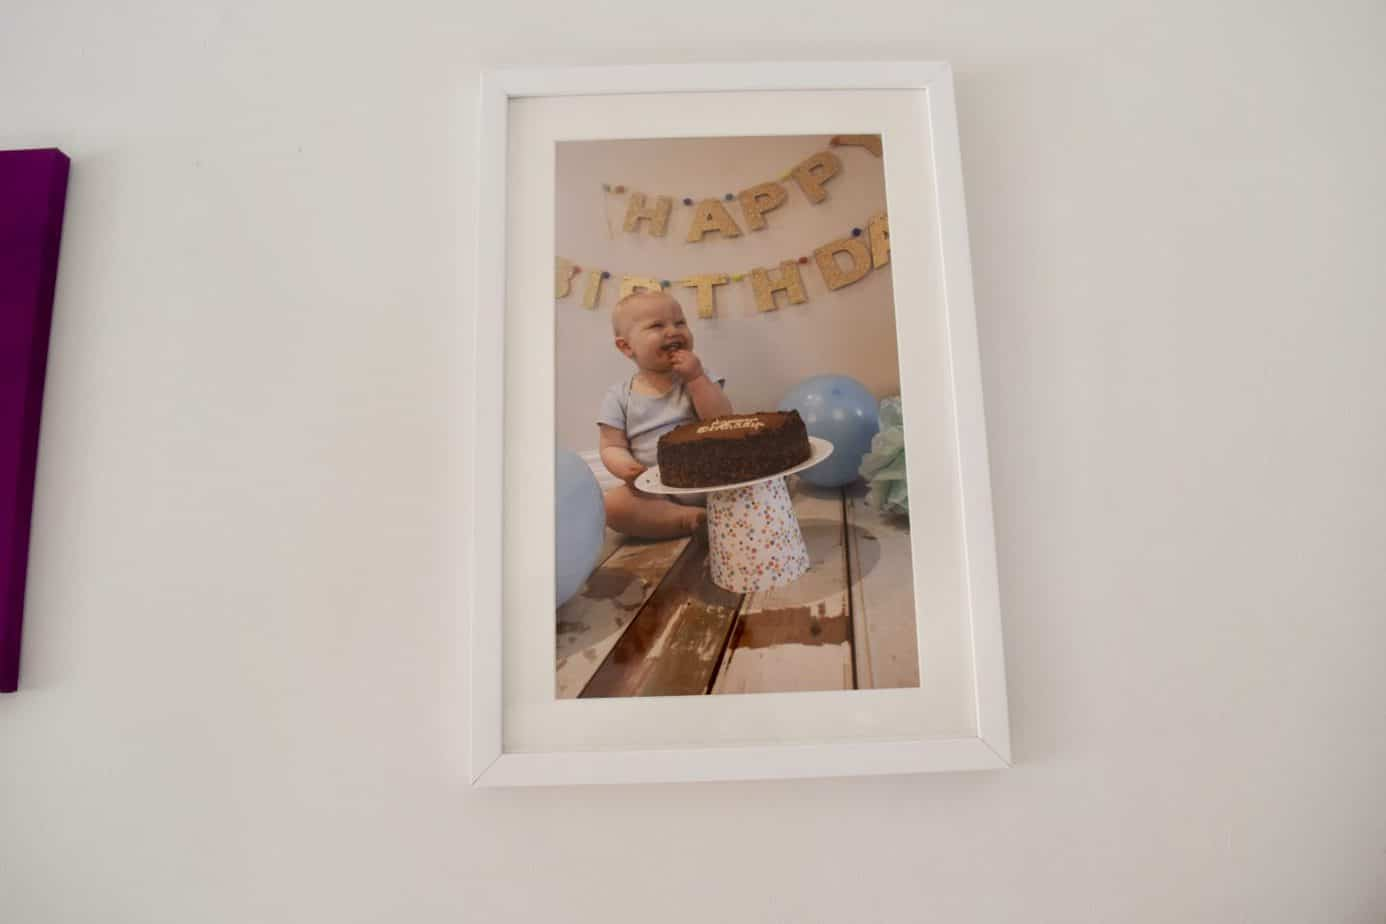 Framed picture of Baby K cakesmash